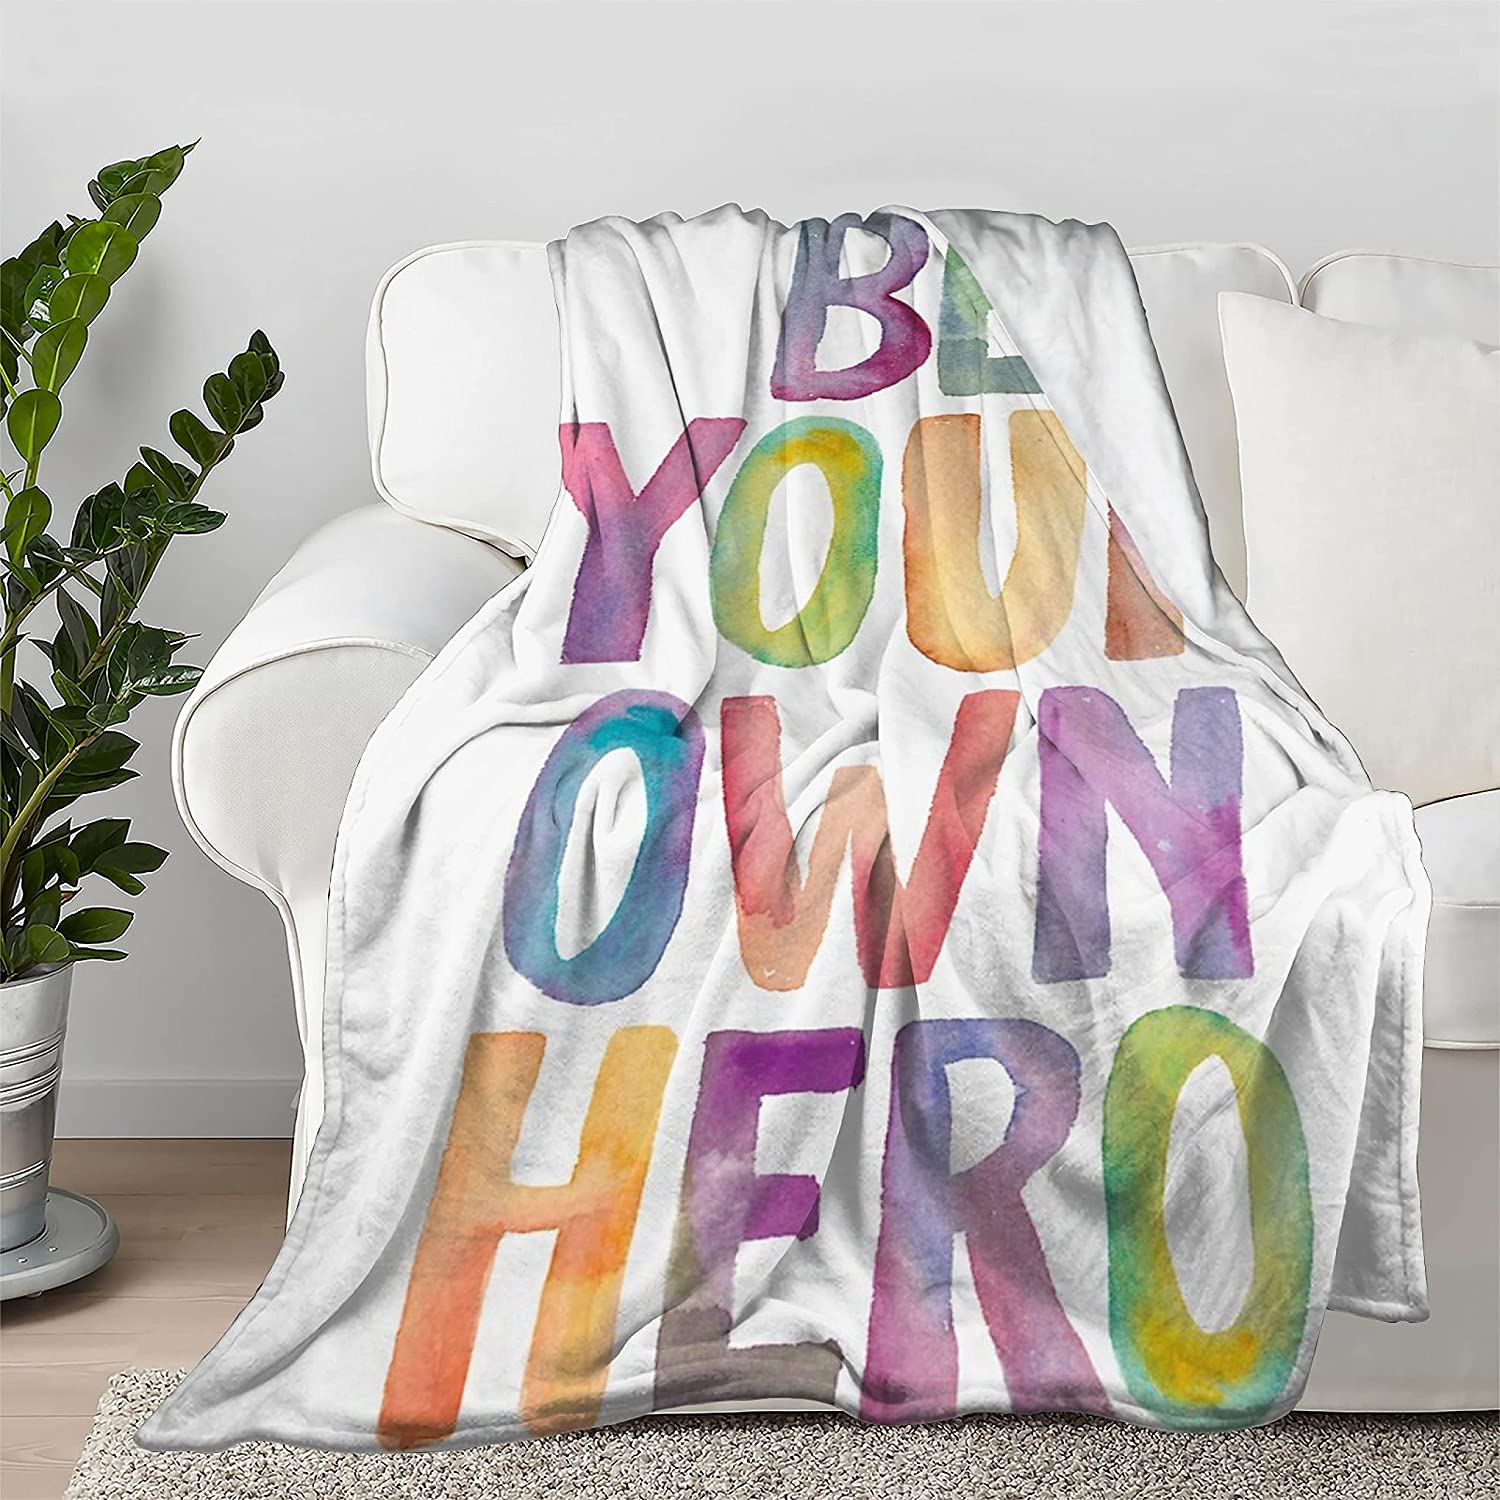 Lokapala Be Your Tucson Shipping included Mall Own Hero Throw Bedspread Quilt Blanket Flannel